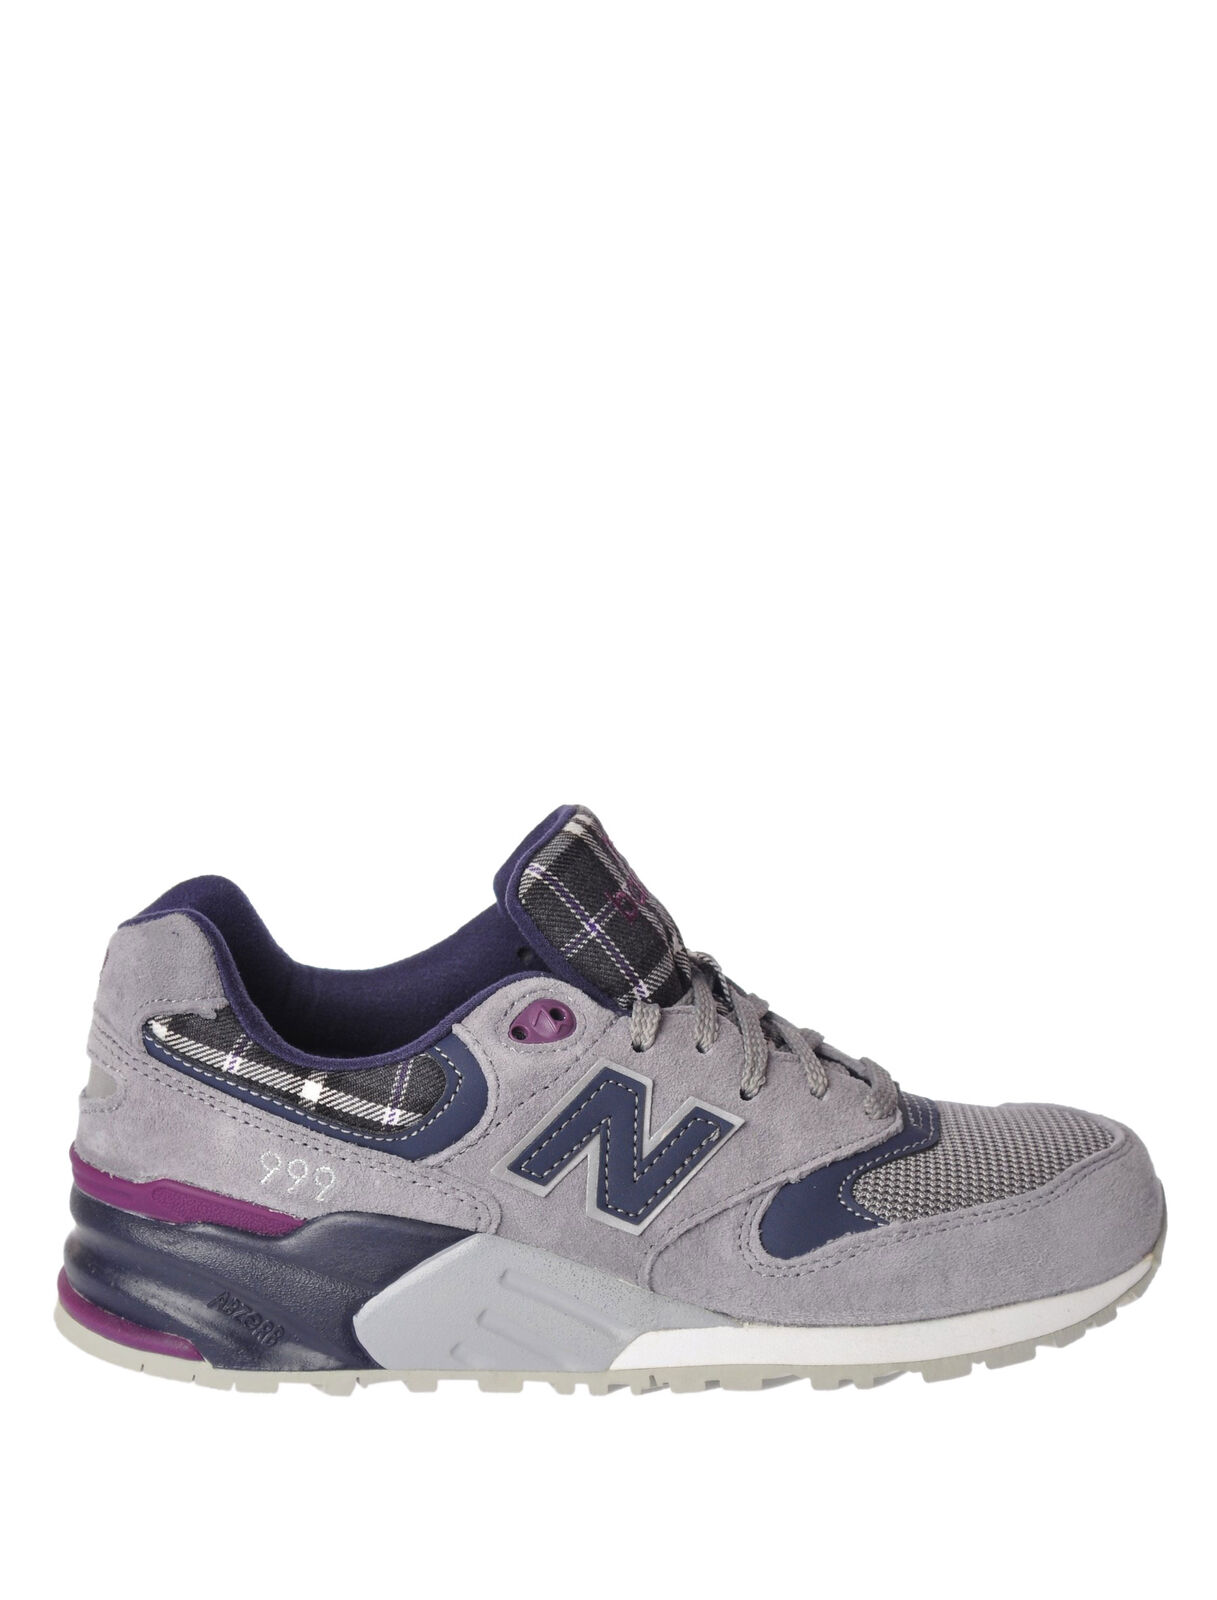 New Balance - Shoes- low - Woman - Grey - 442115C183639